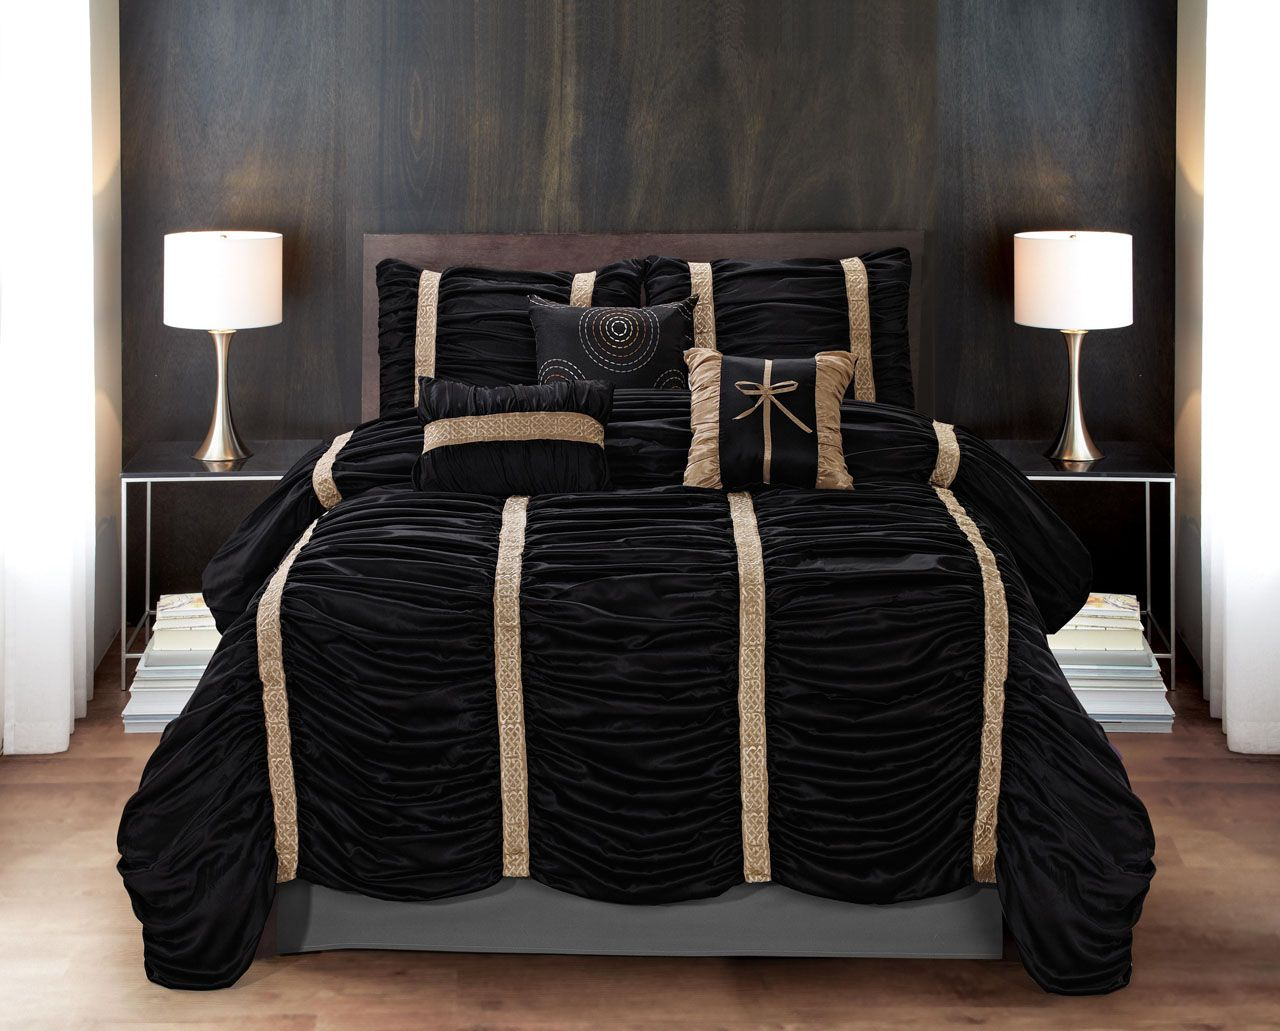 7 Piece Baraniece Blackgold Comforter Set Decor Bedding In 2019